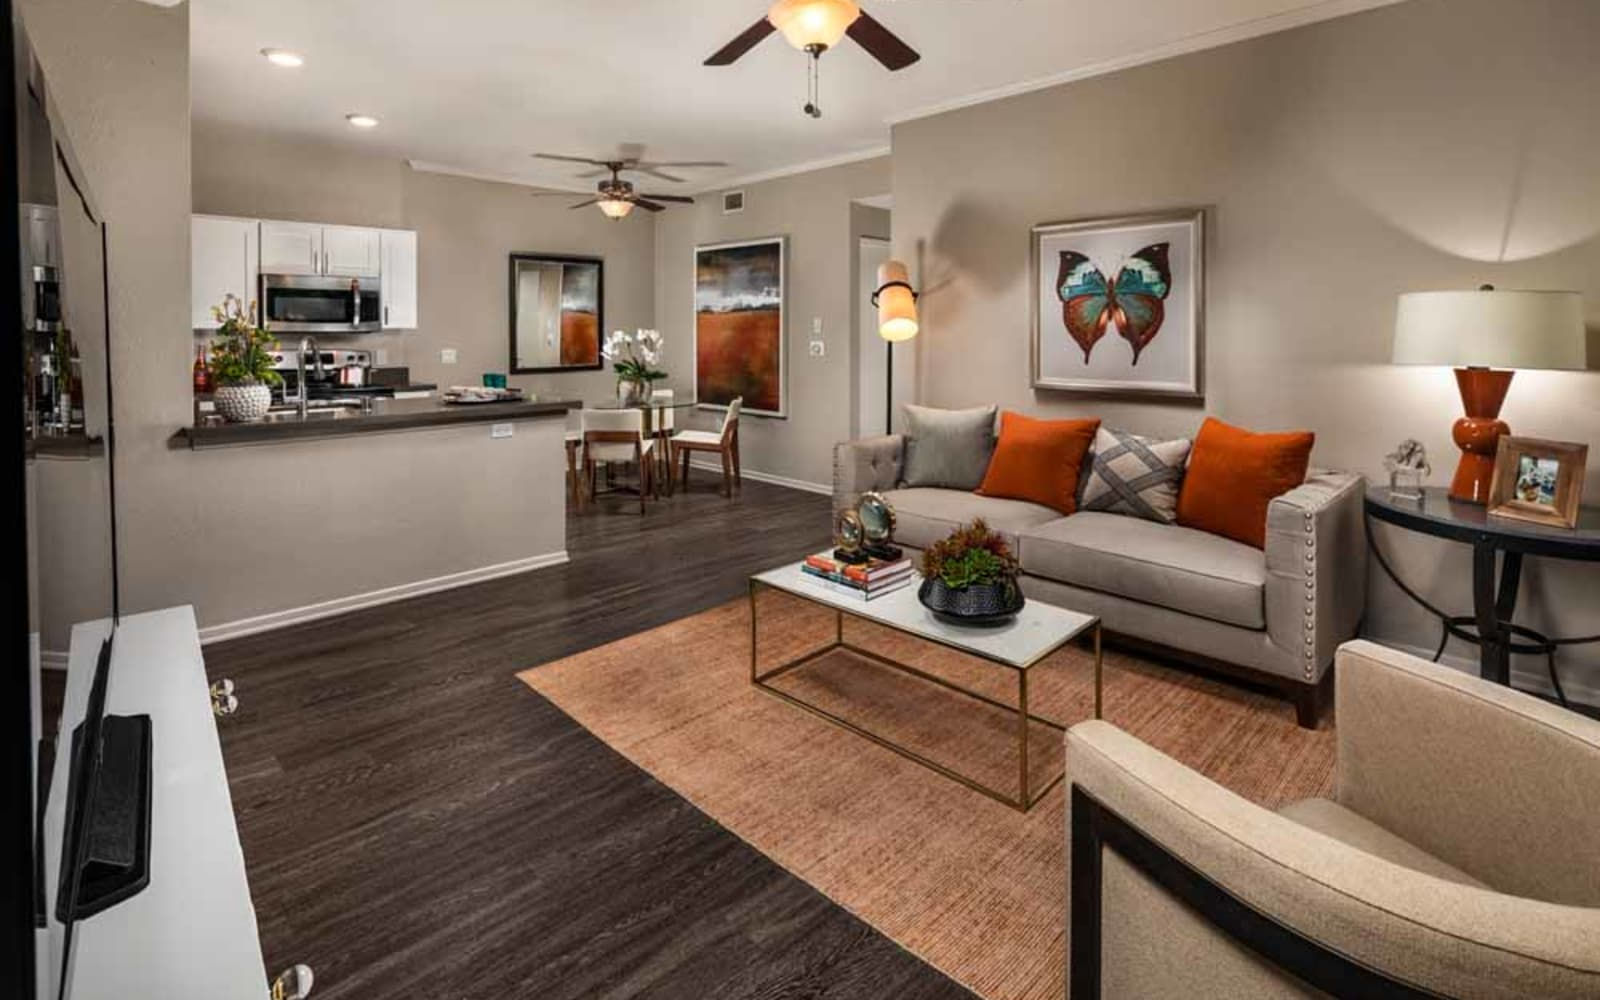 An apartment kitchen facing the living room at Colonnade at Sycamore Highlands in Riverside, California